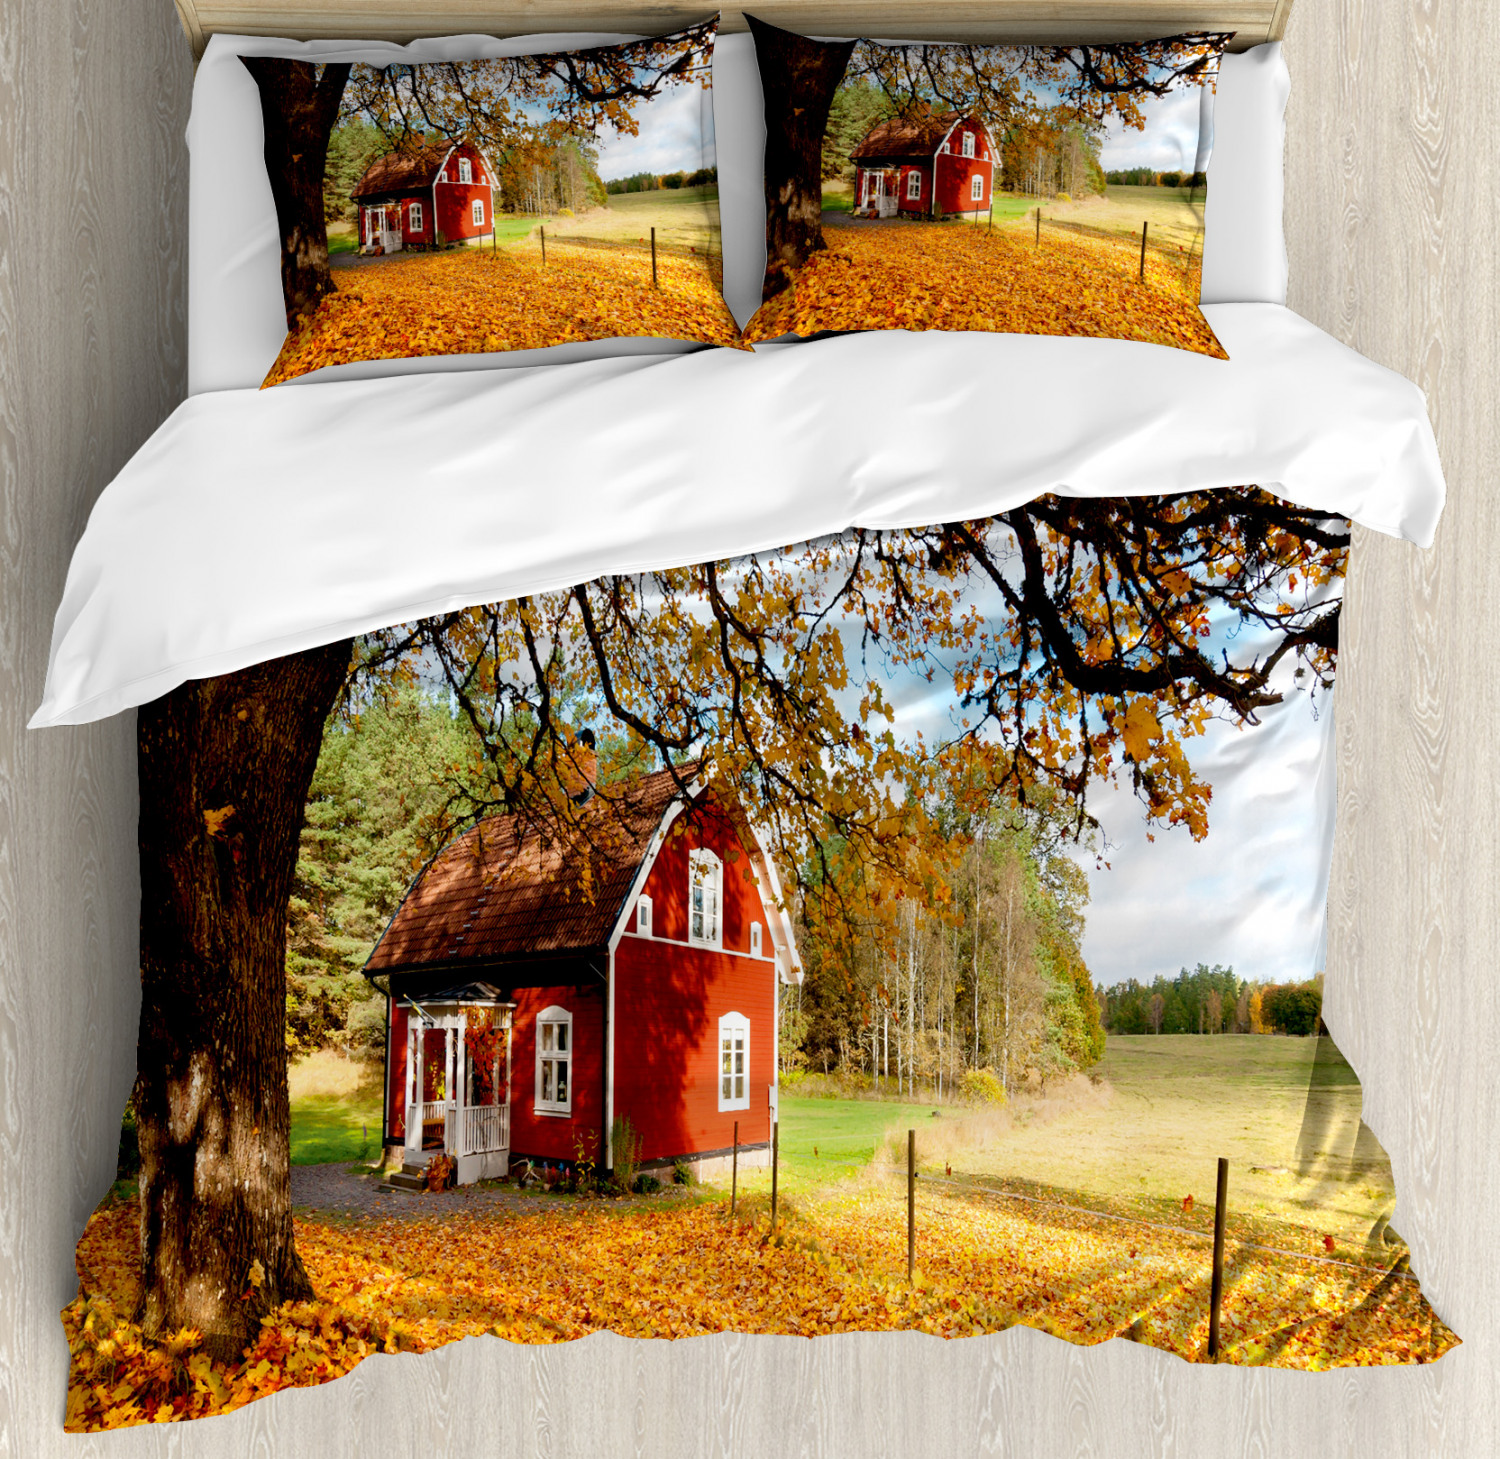 Fall Duvet Cover Set with Pillow Shams rosso Swedish Country House Print